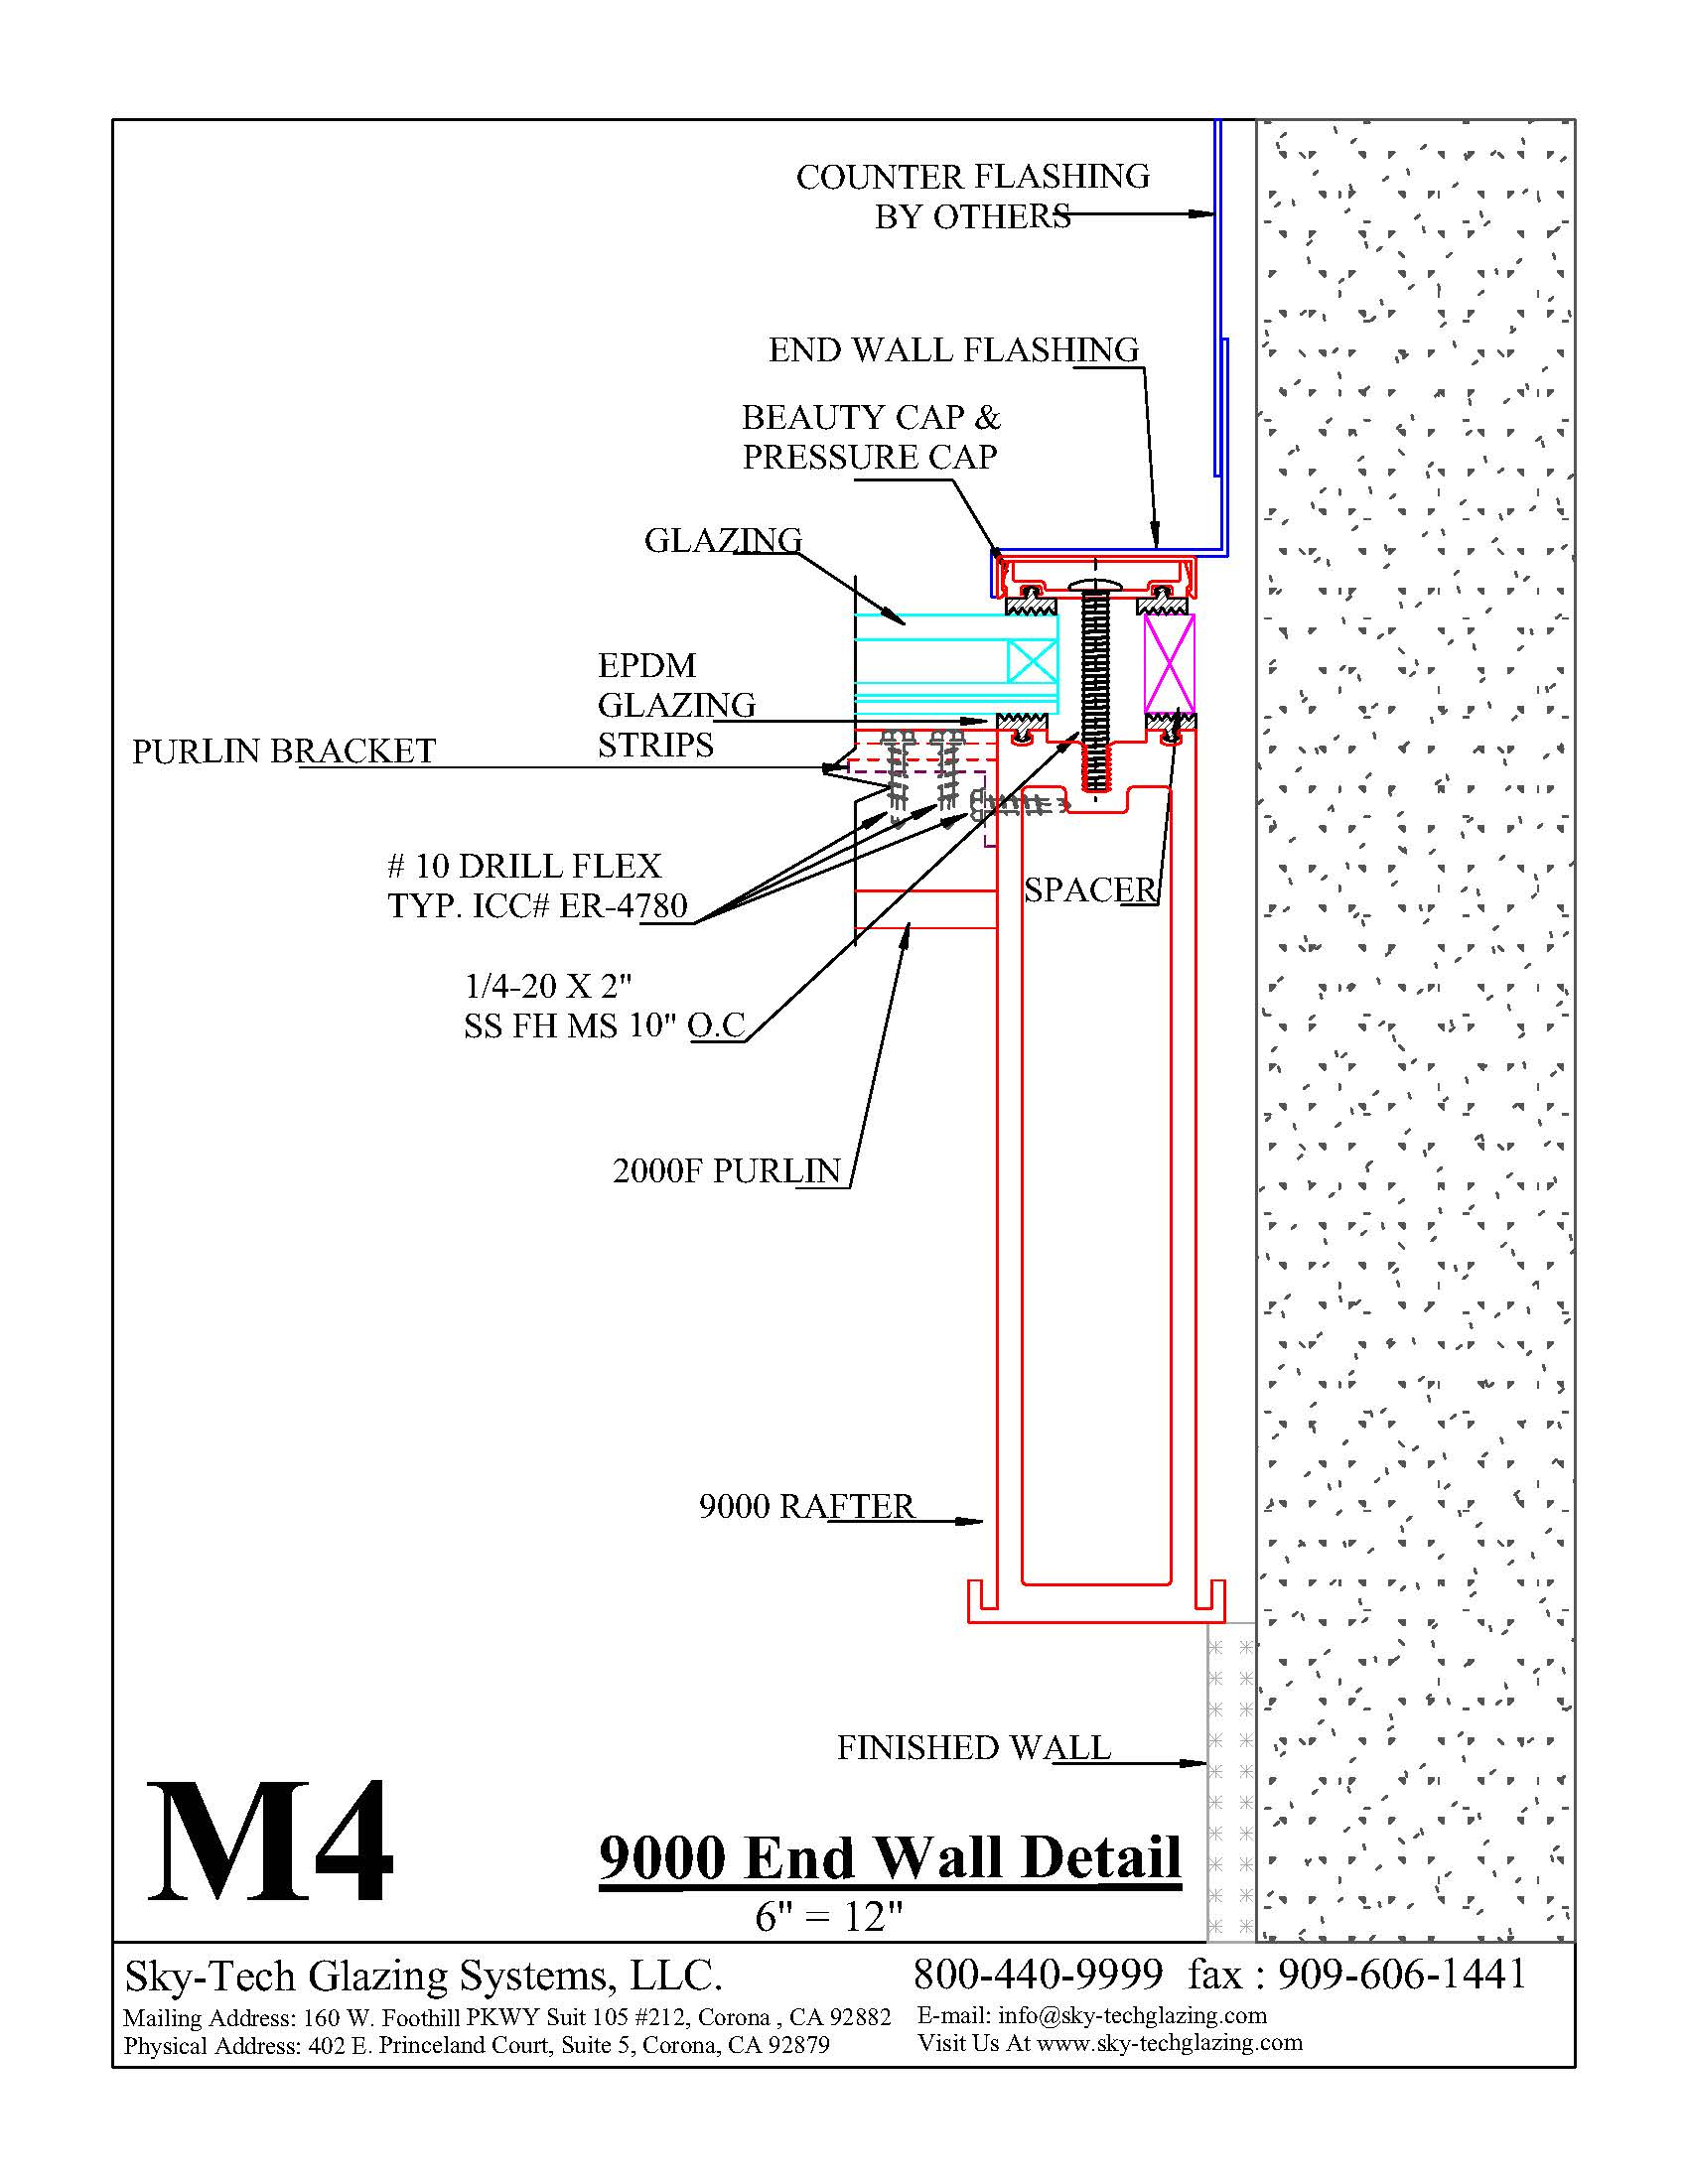 M4 9000 End Wall Detail